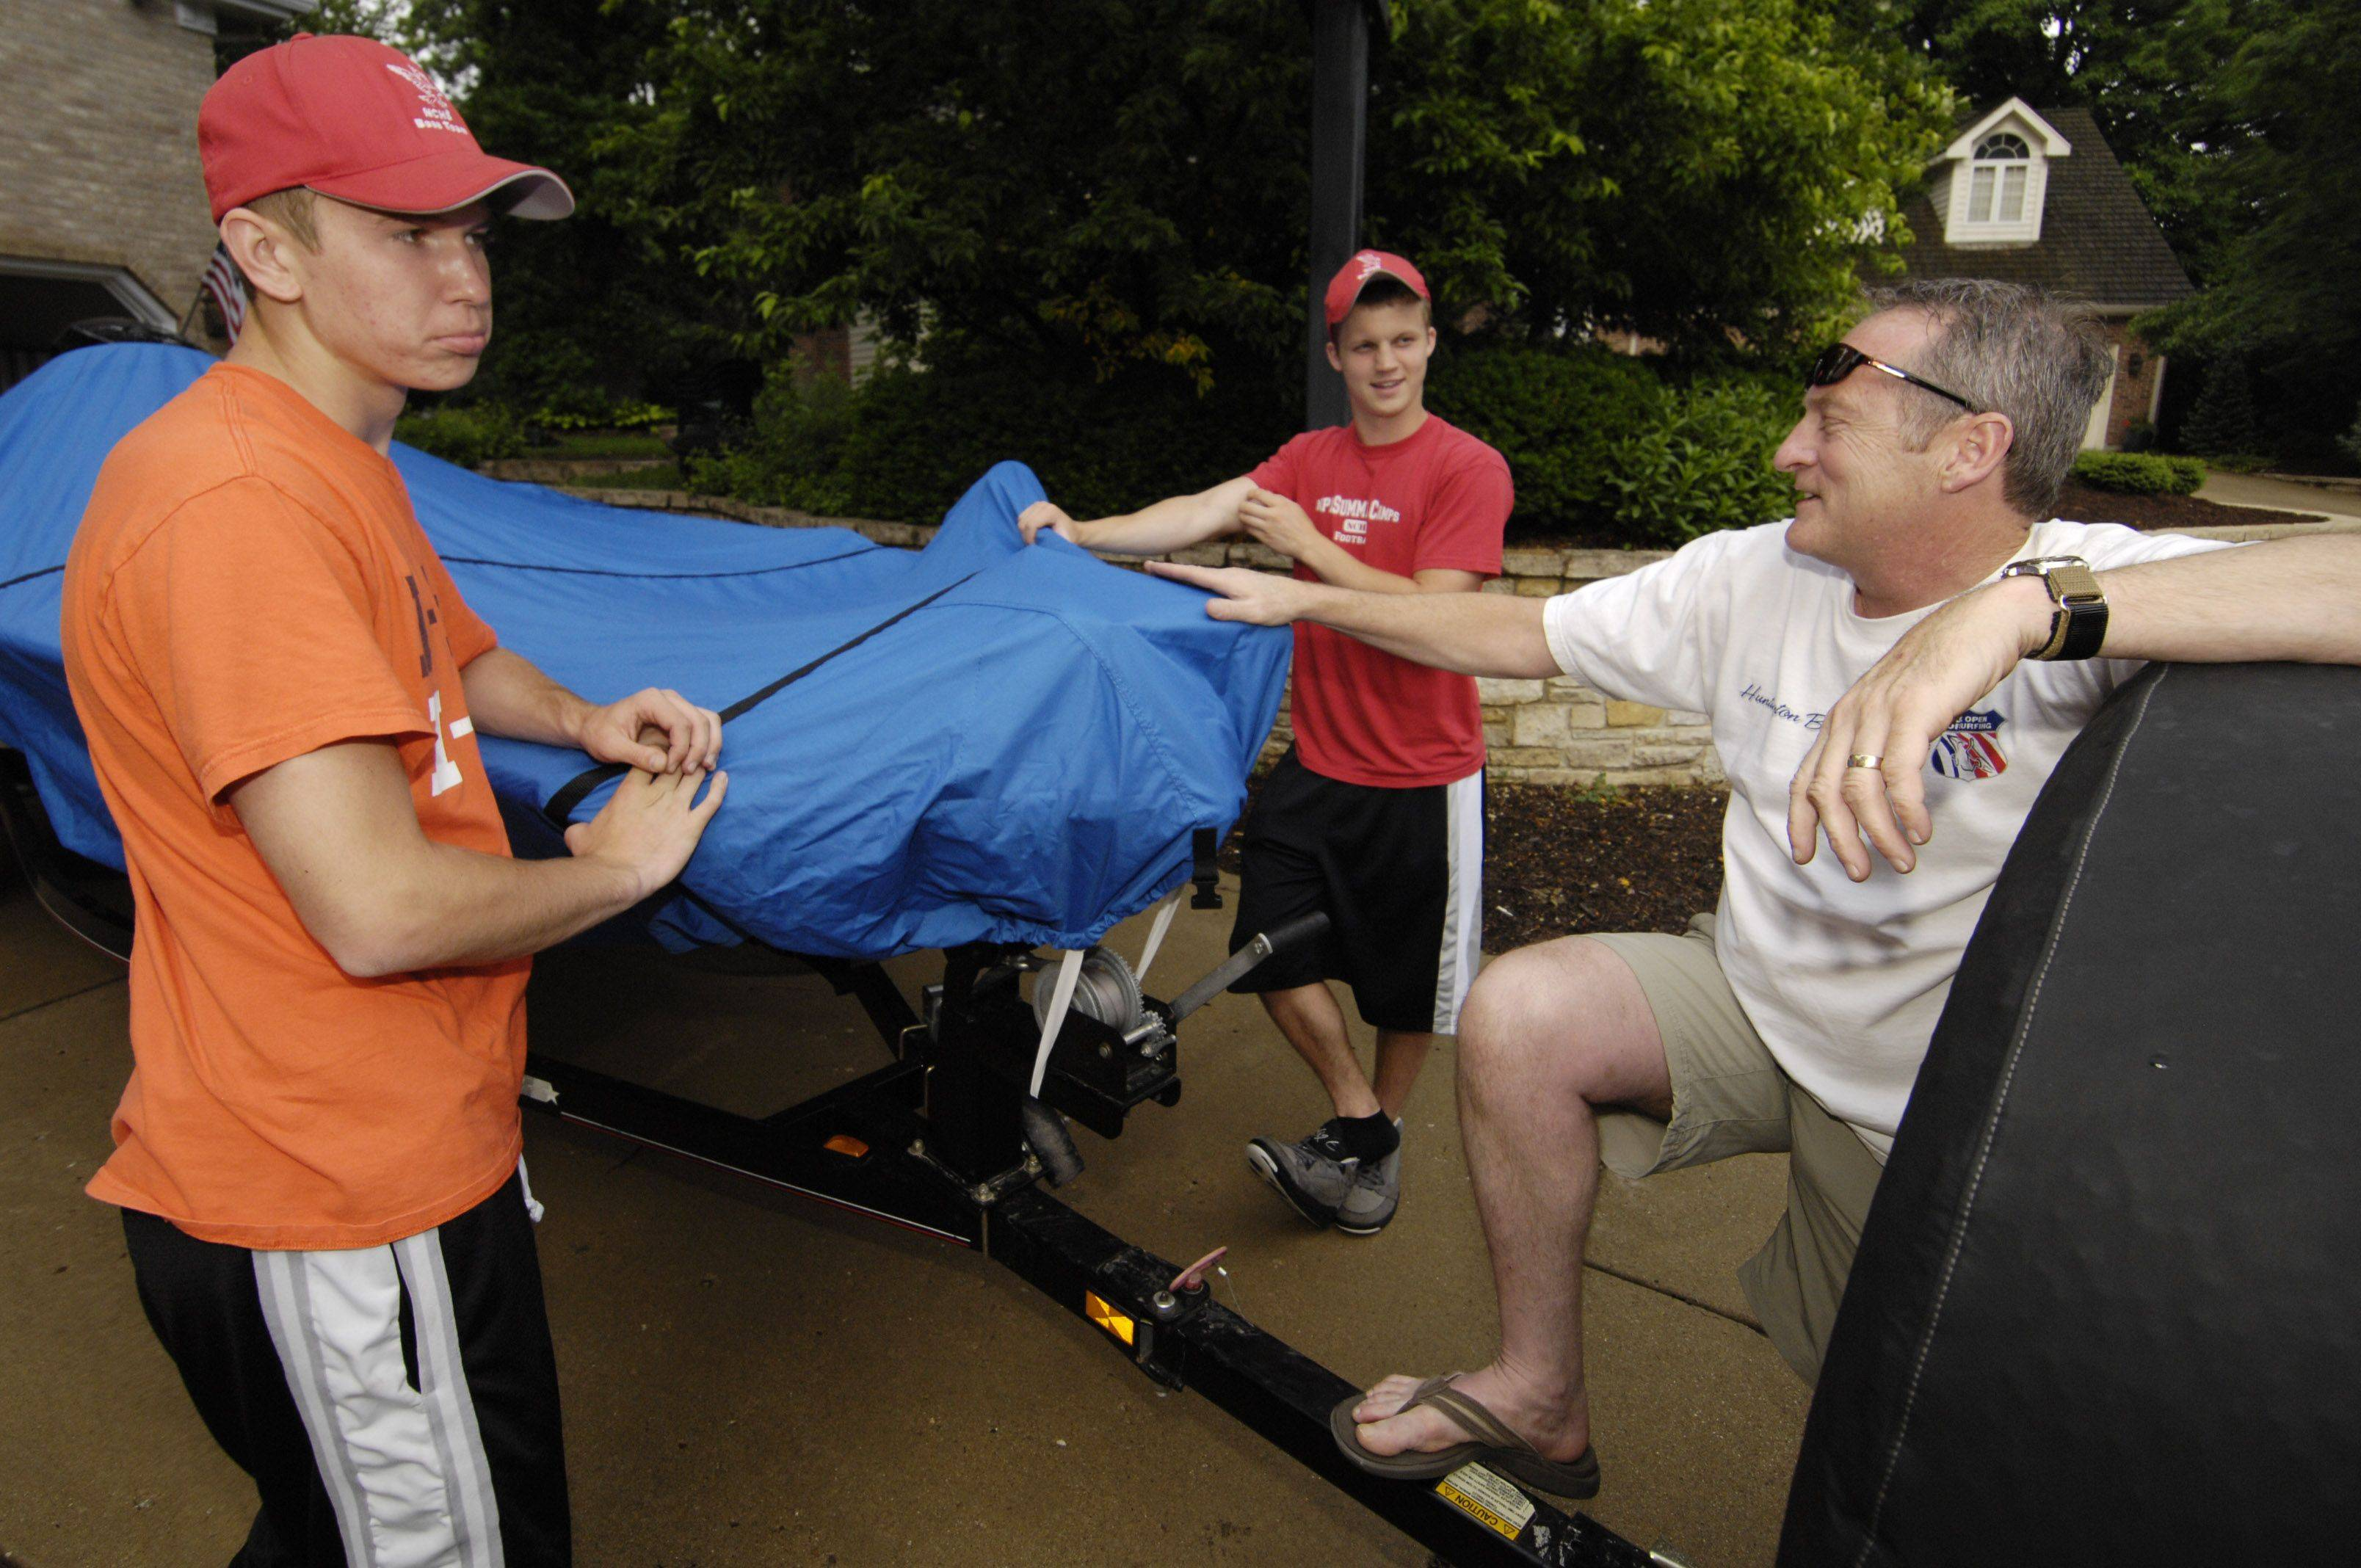 Naperville Central bass fishing team members Charlie Sterrett and Andrew Mlotek, along with coach Brian Bakke, ready a boat Wednesday evening for the trip to the state finals at Carlyle Lake.